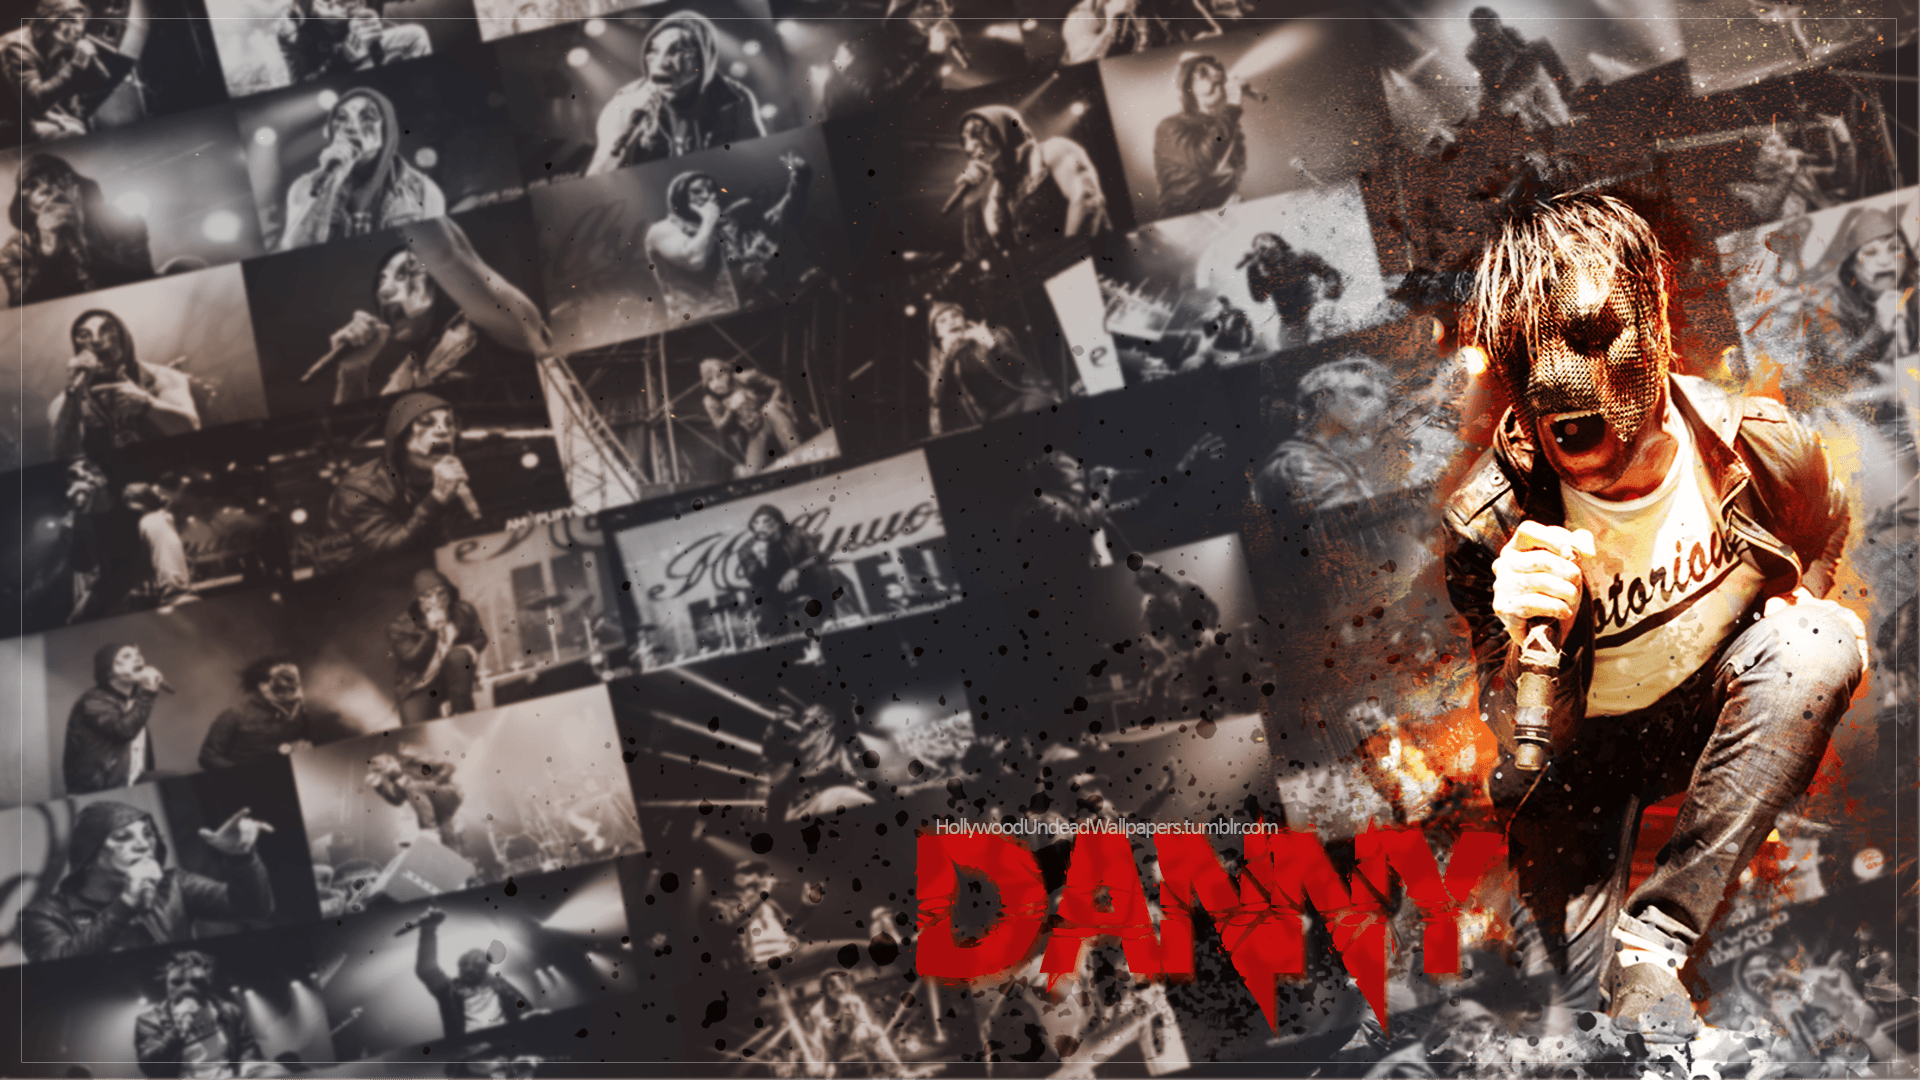 Hollywood Undead Day Of The Dead Danny Wallpaper